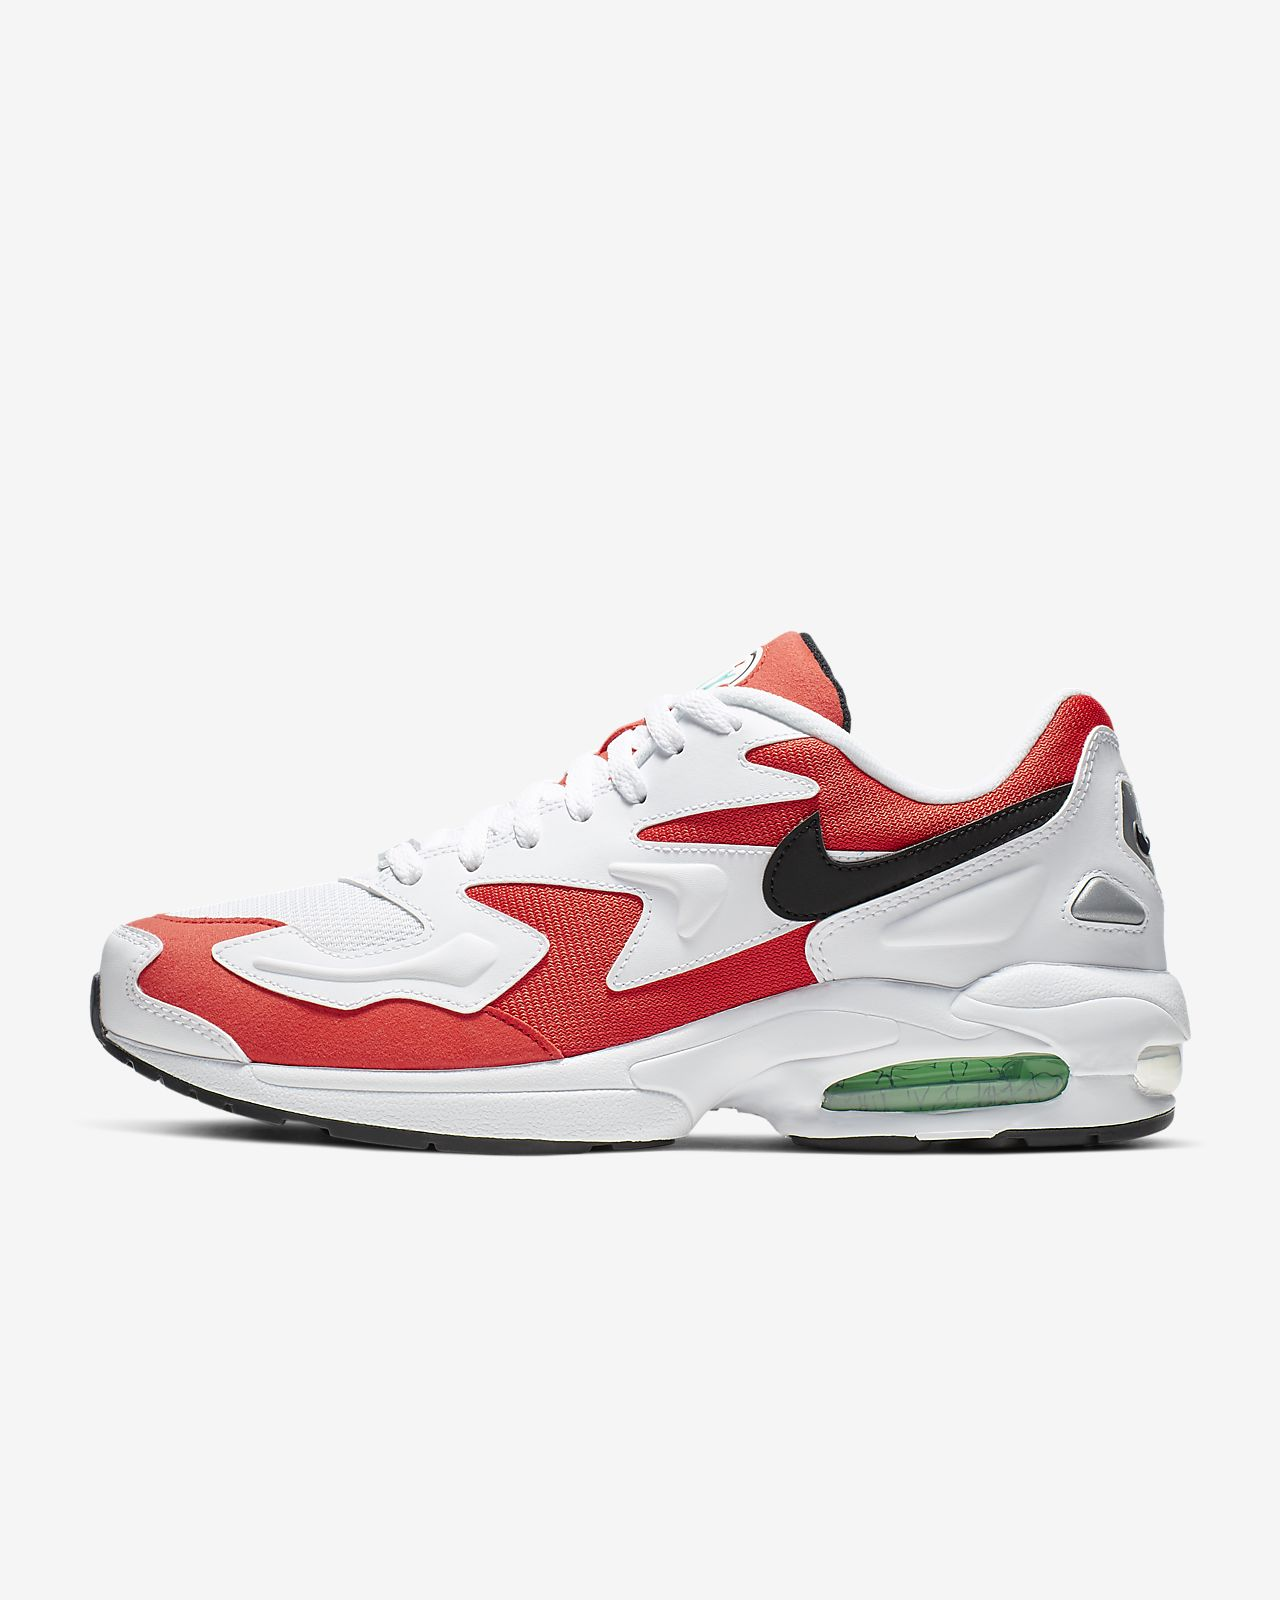 Chaussure Max2 Light Homme Nike Air Pour eW9IDYbEH2